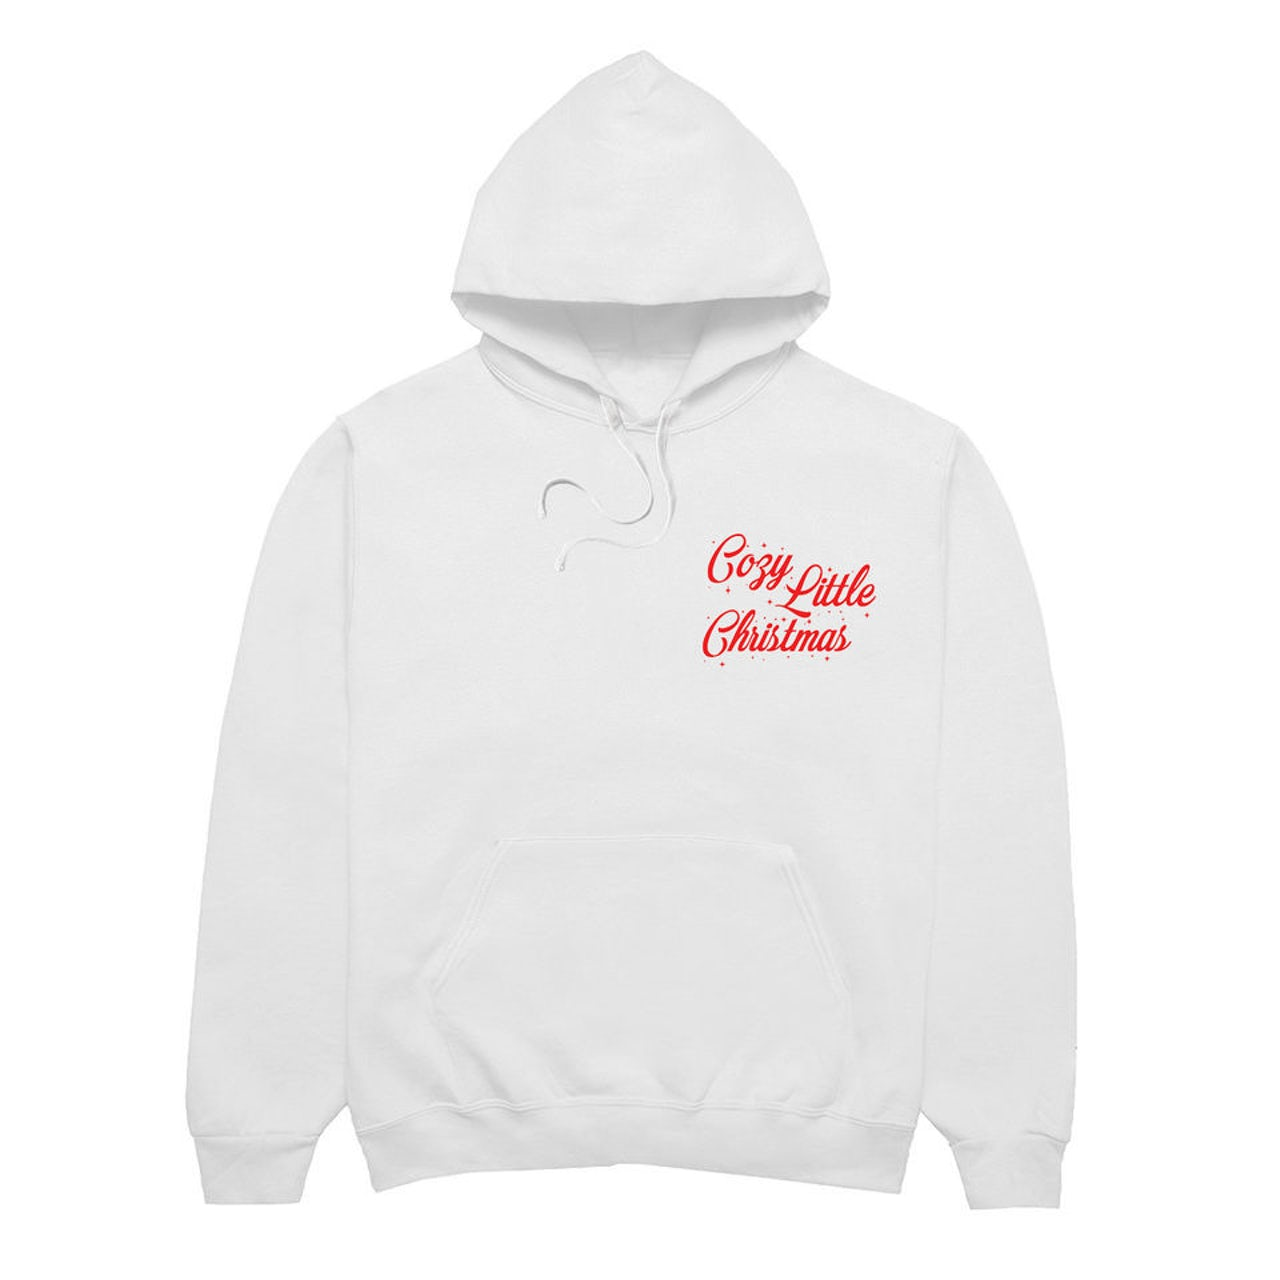 Katy Perry Cozy Little Christmas.Katy Perry Cozy Little Christmas White Hoodie